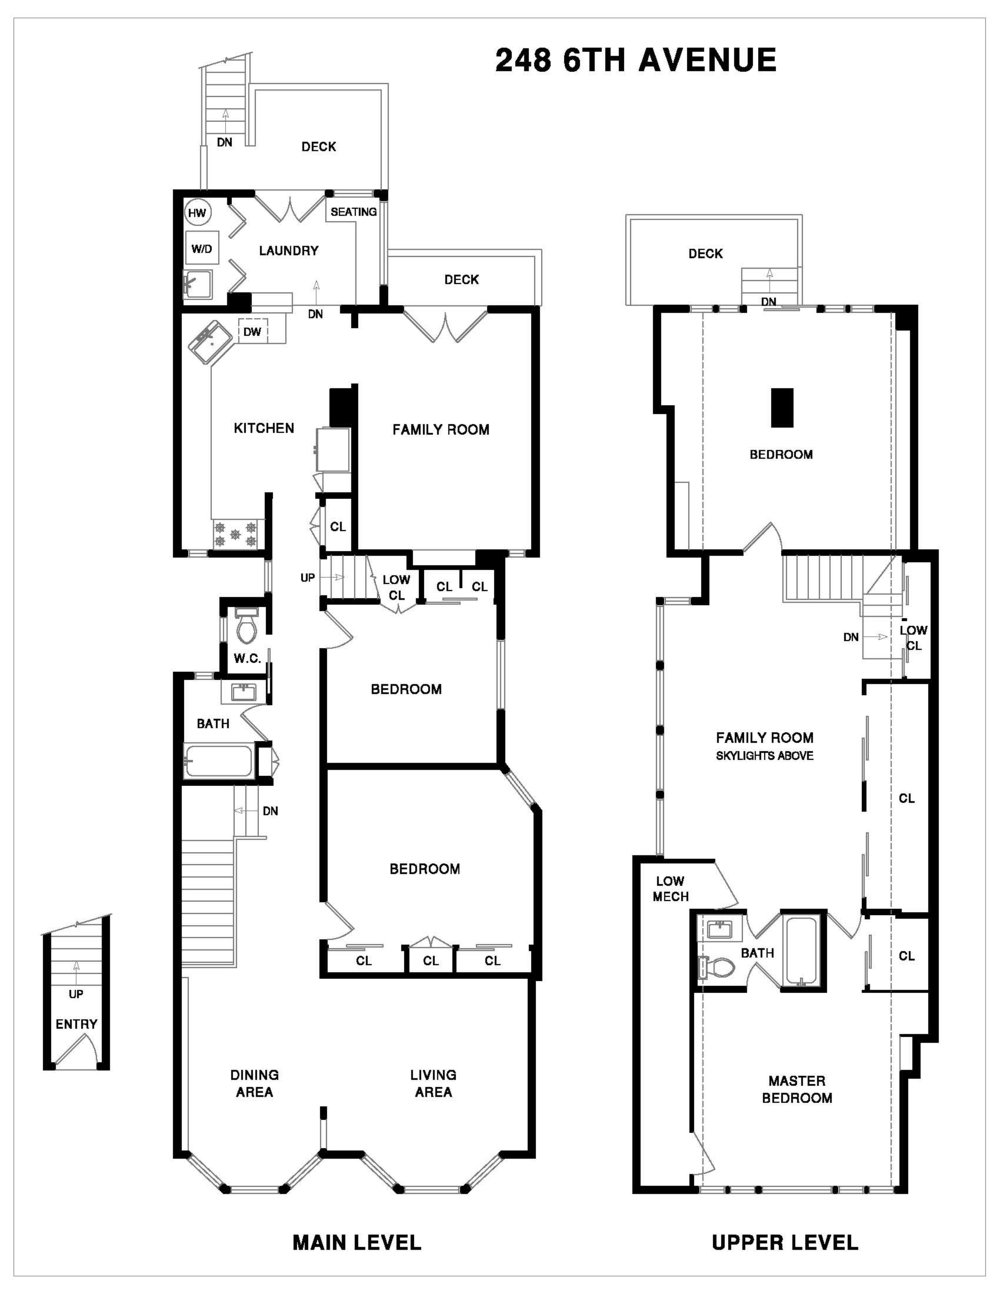 248 6th Ave Floor Plans.jpg